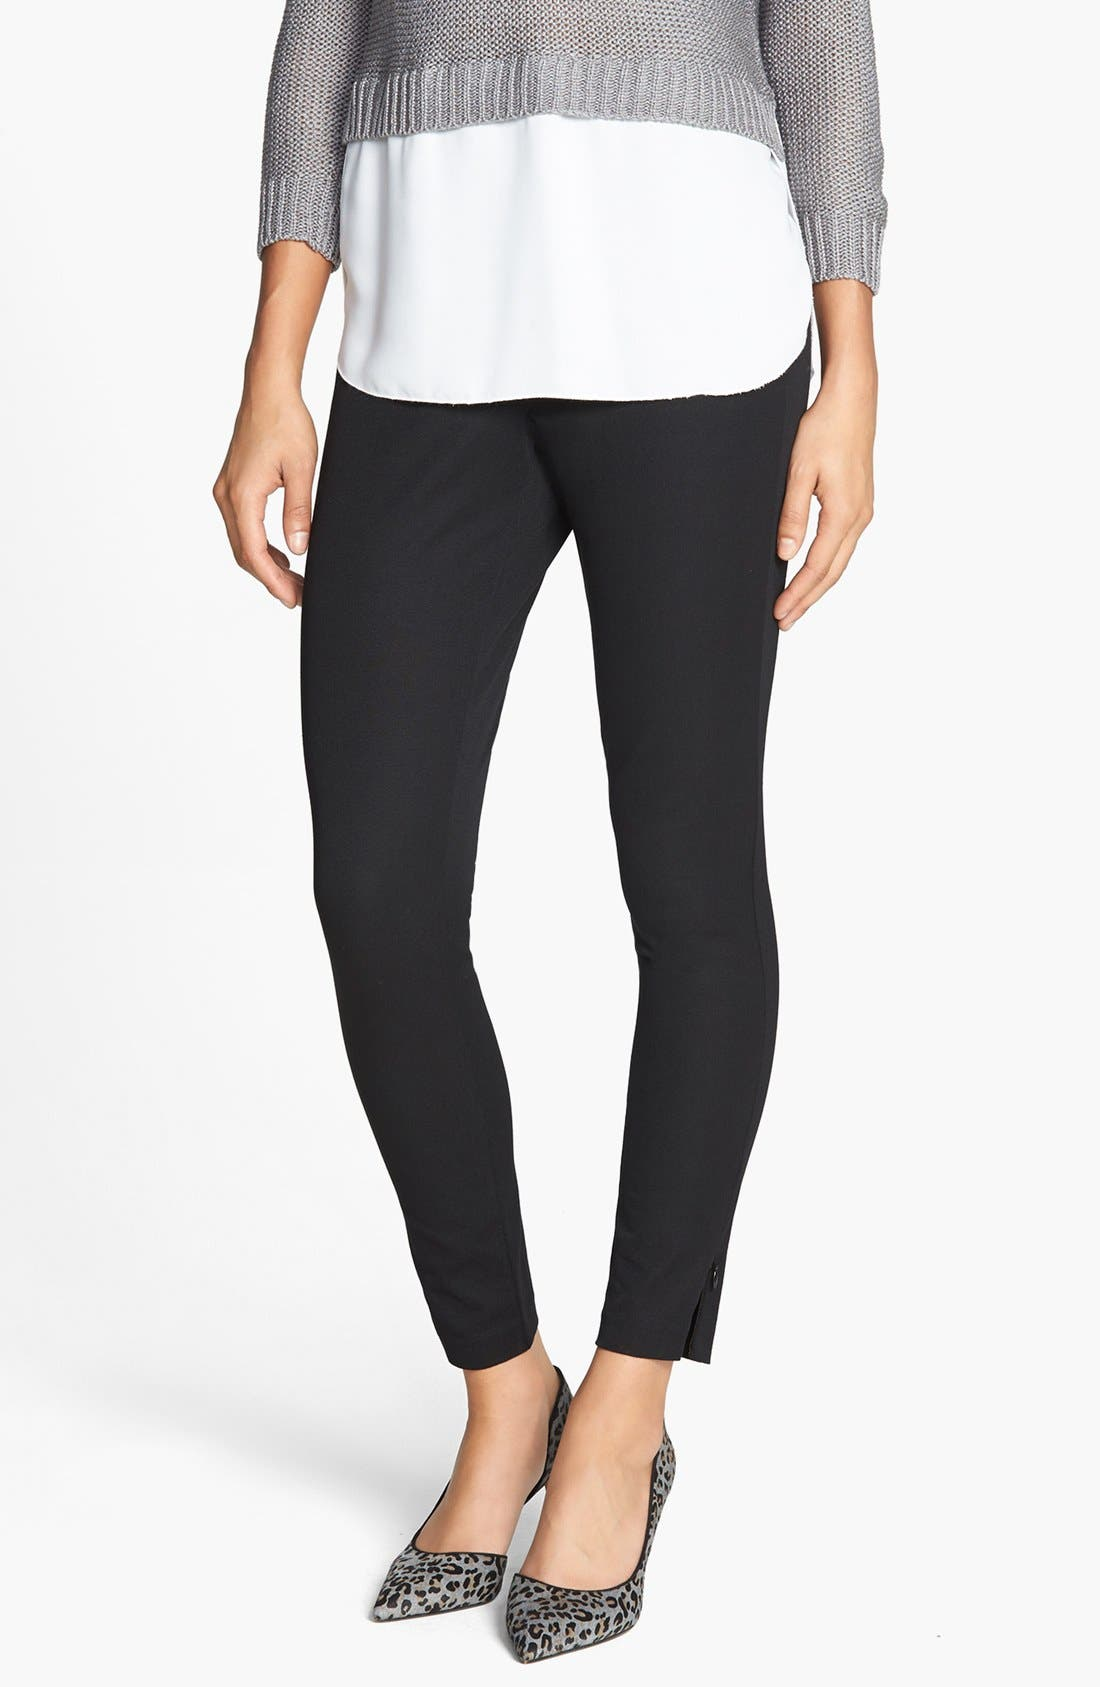 Main Image - SPANX® 'Ready to Wow' Stretch Twill Control Top Leggings